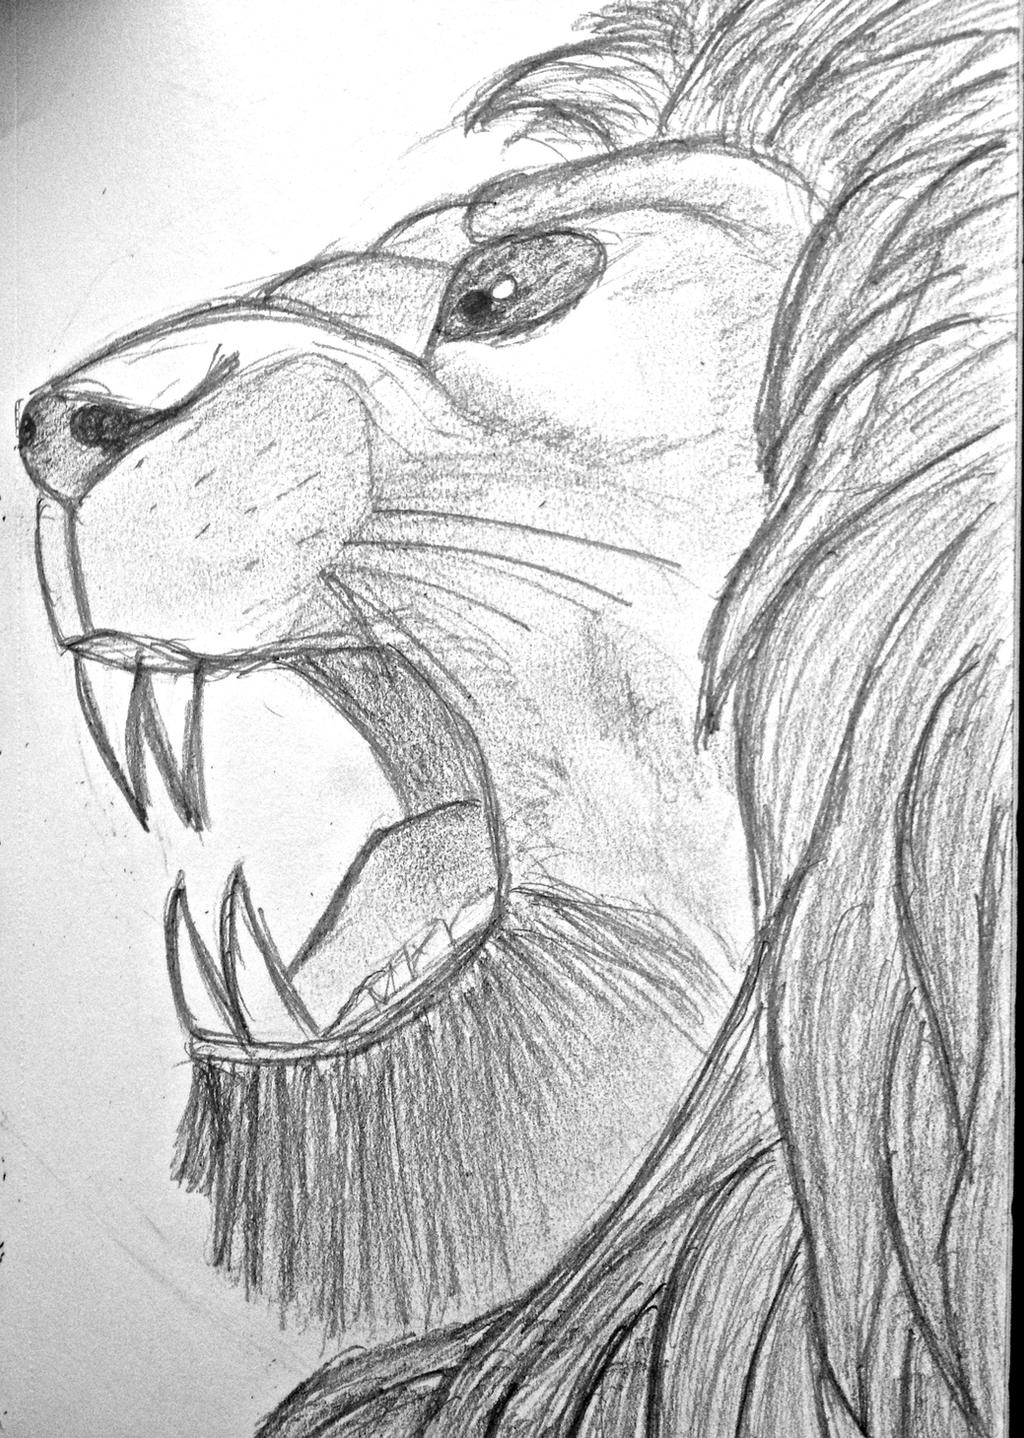 The roaring lion by awesomedetective on DeviantArt